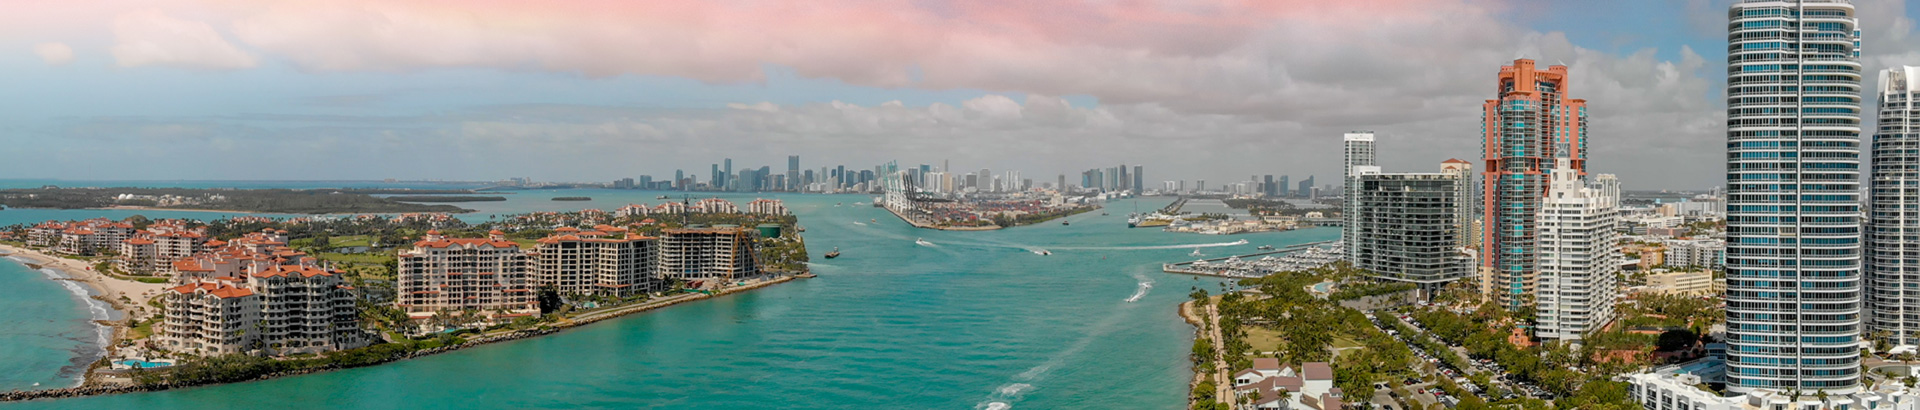 fisher-island-day-view